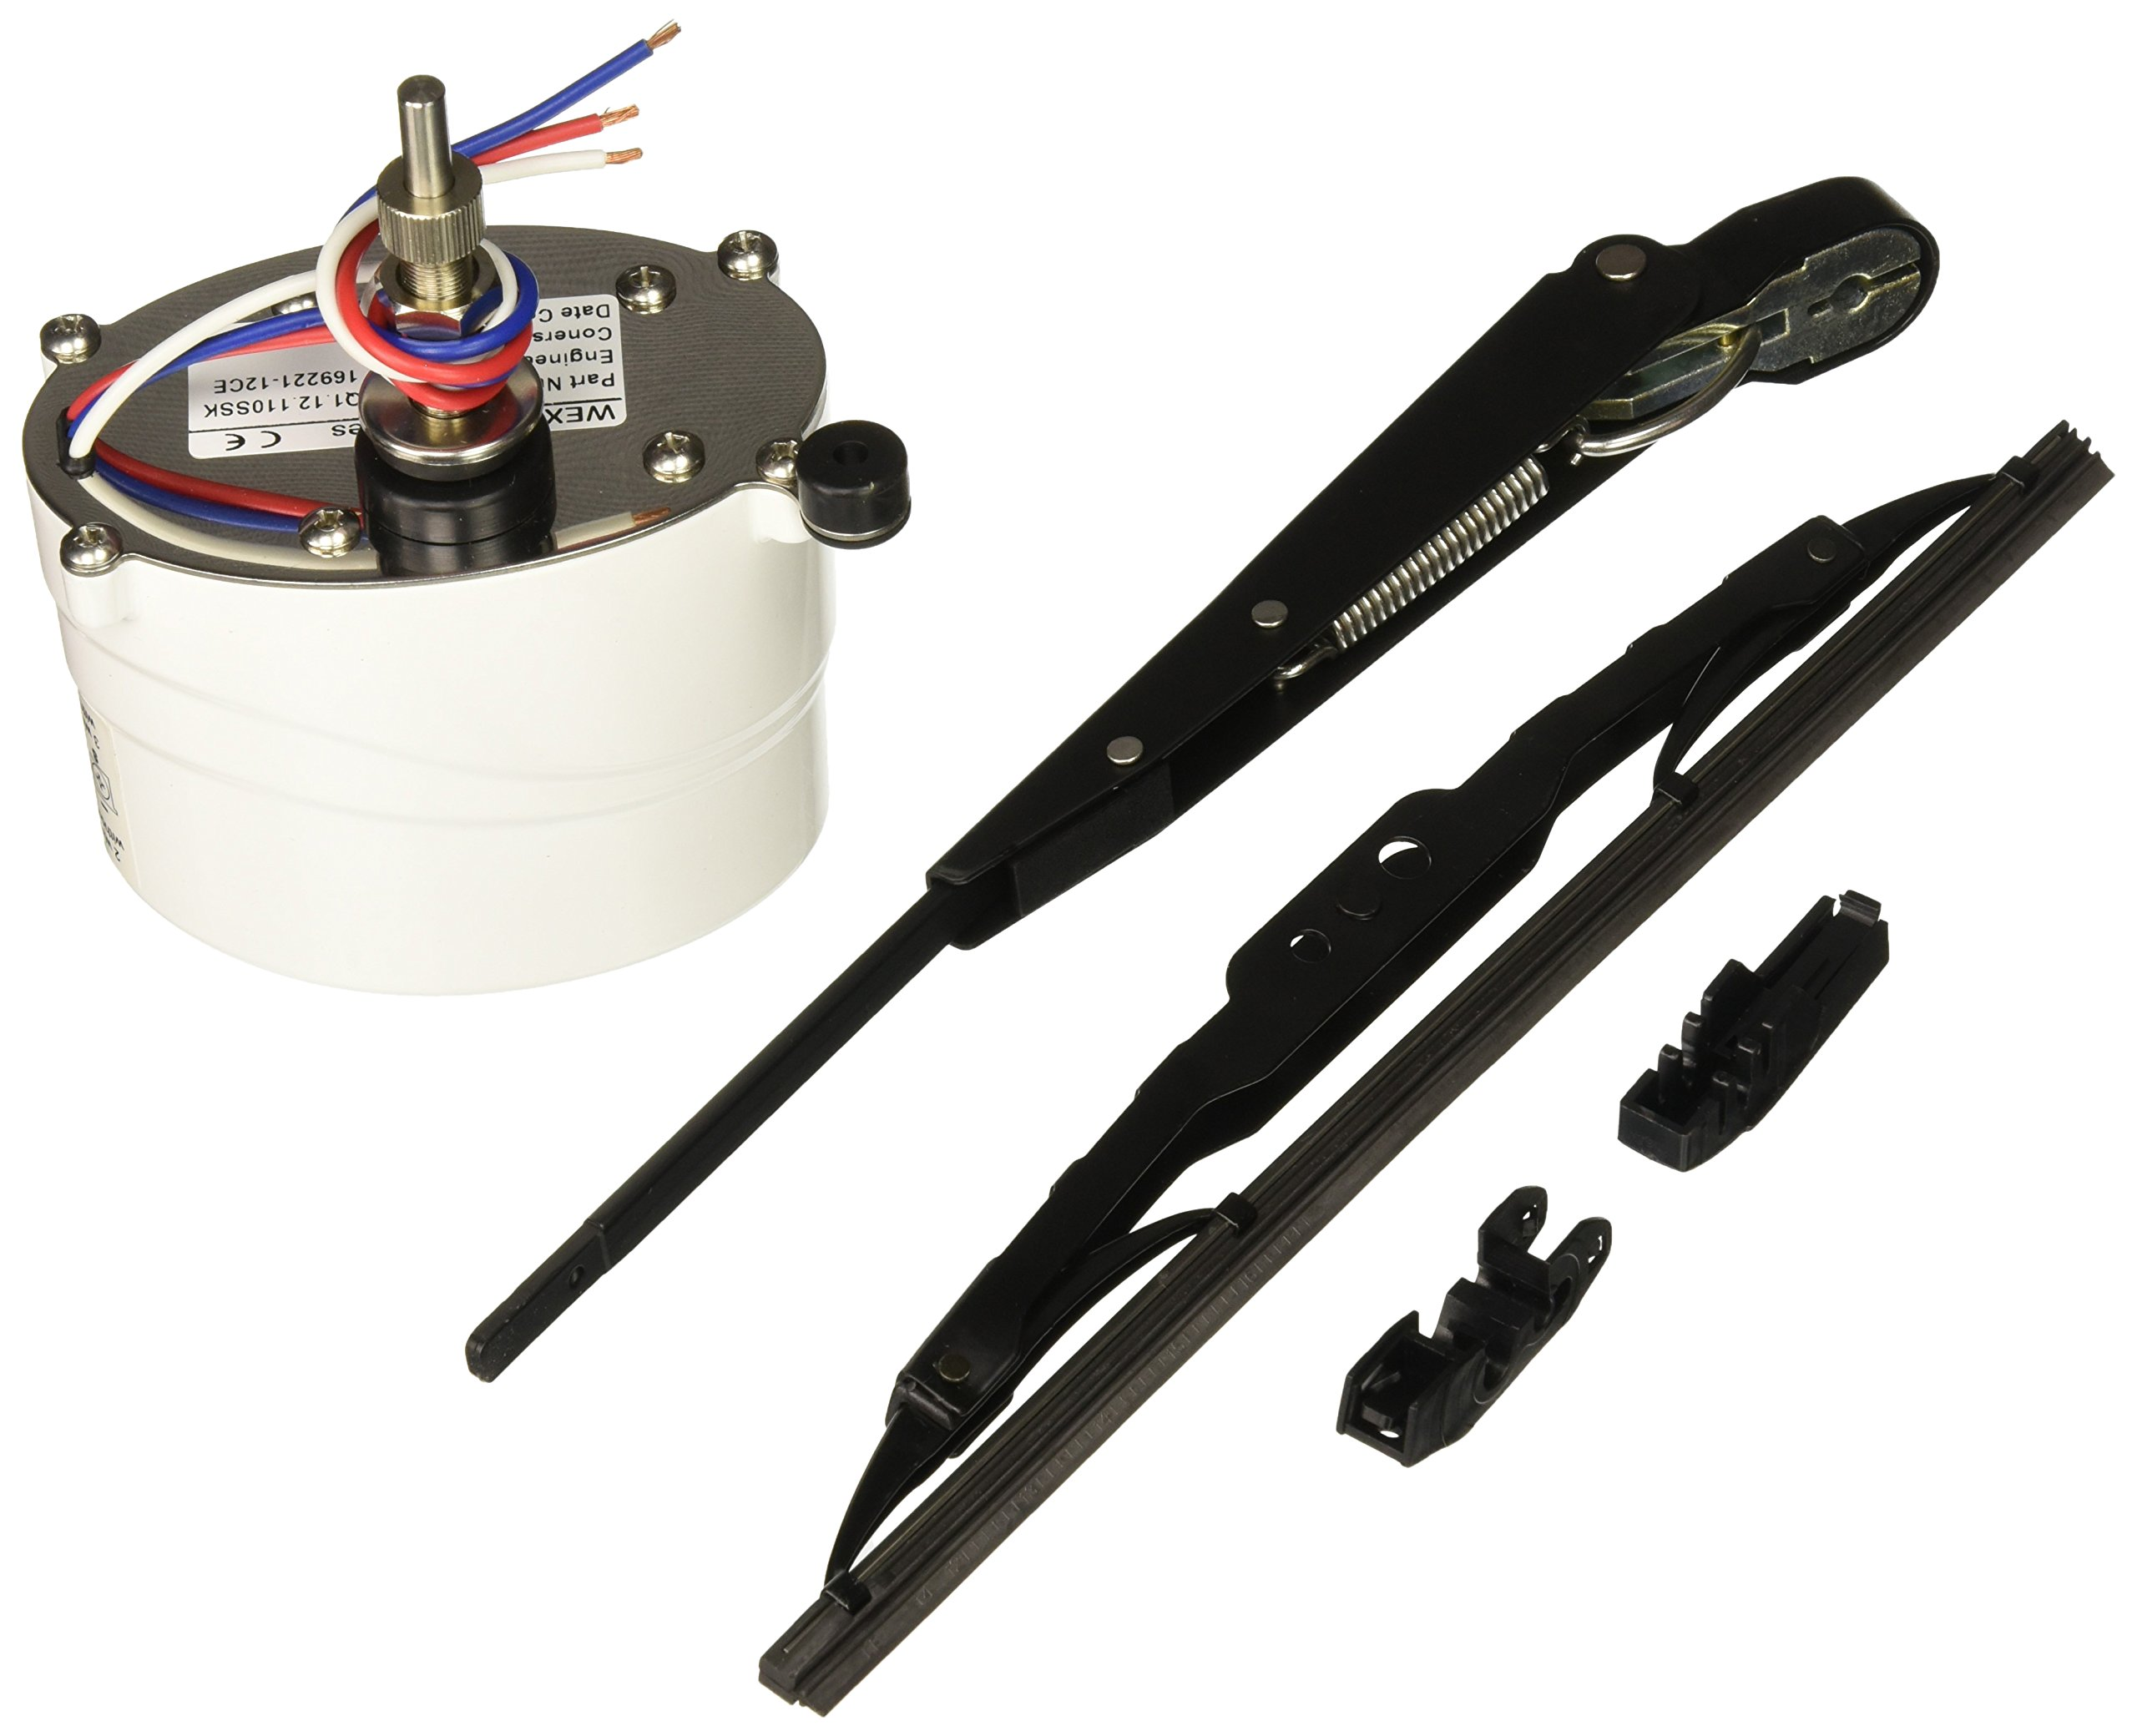 Wexco 1.5'' Shaft Marine Windshield Wiper Kit - Wiper Arm, Blade and Motor 12V, 110 Degree Sweep. Car Automotive Accessory by AutoTex